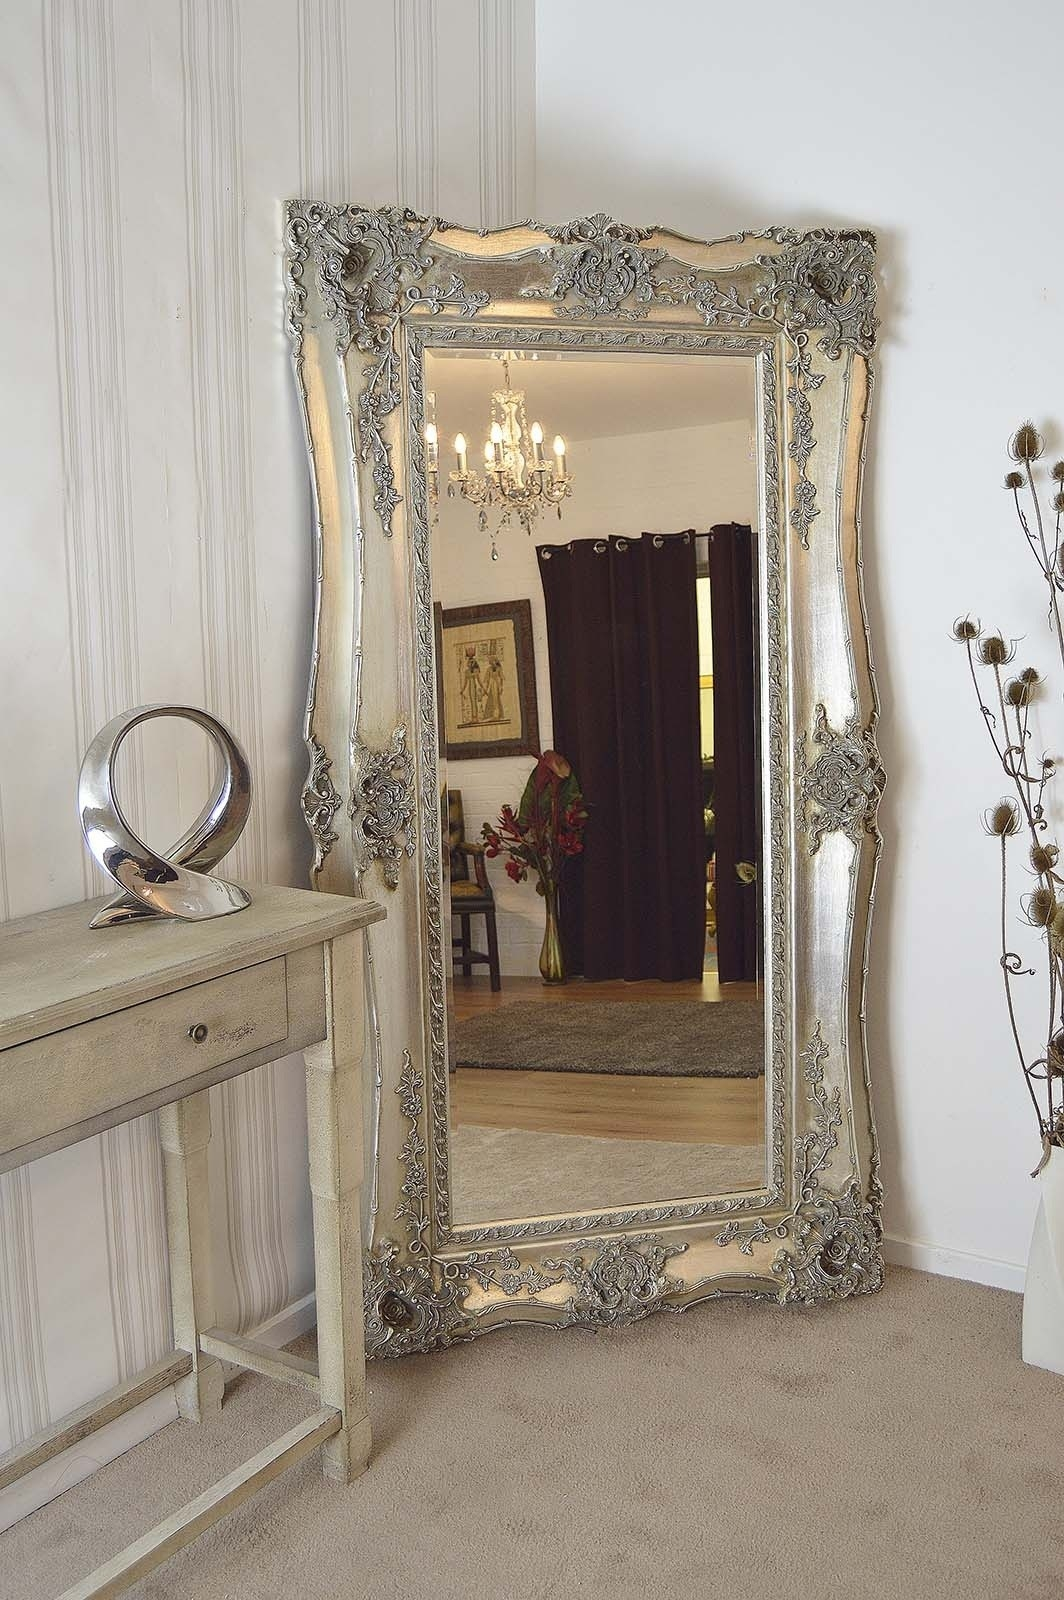 Ornate Full Length Wall Mirror Mirror Design Ideas Within Ornate Large Mirror (Image 14 of 15)